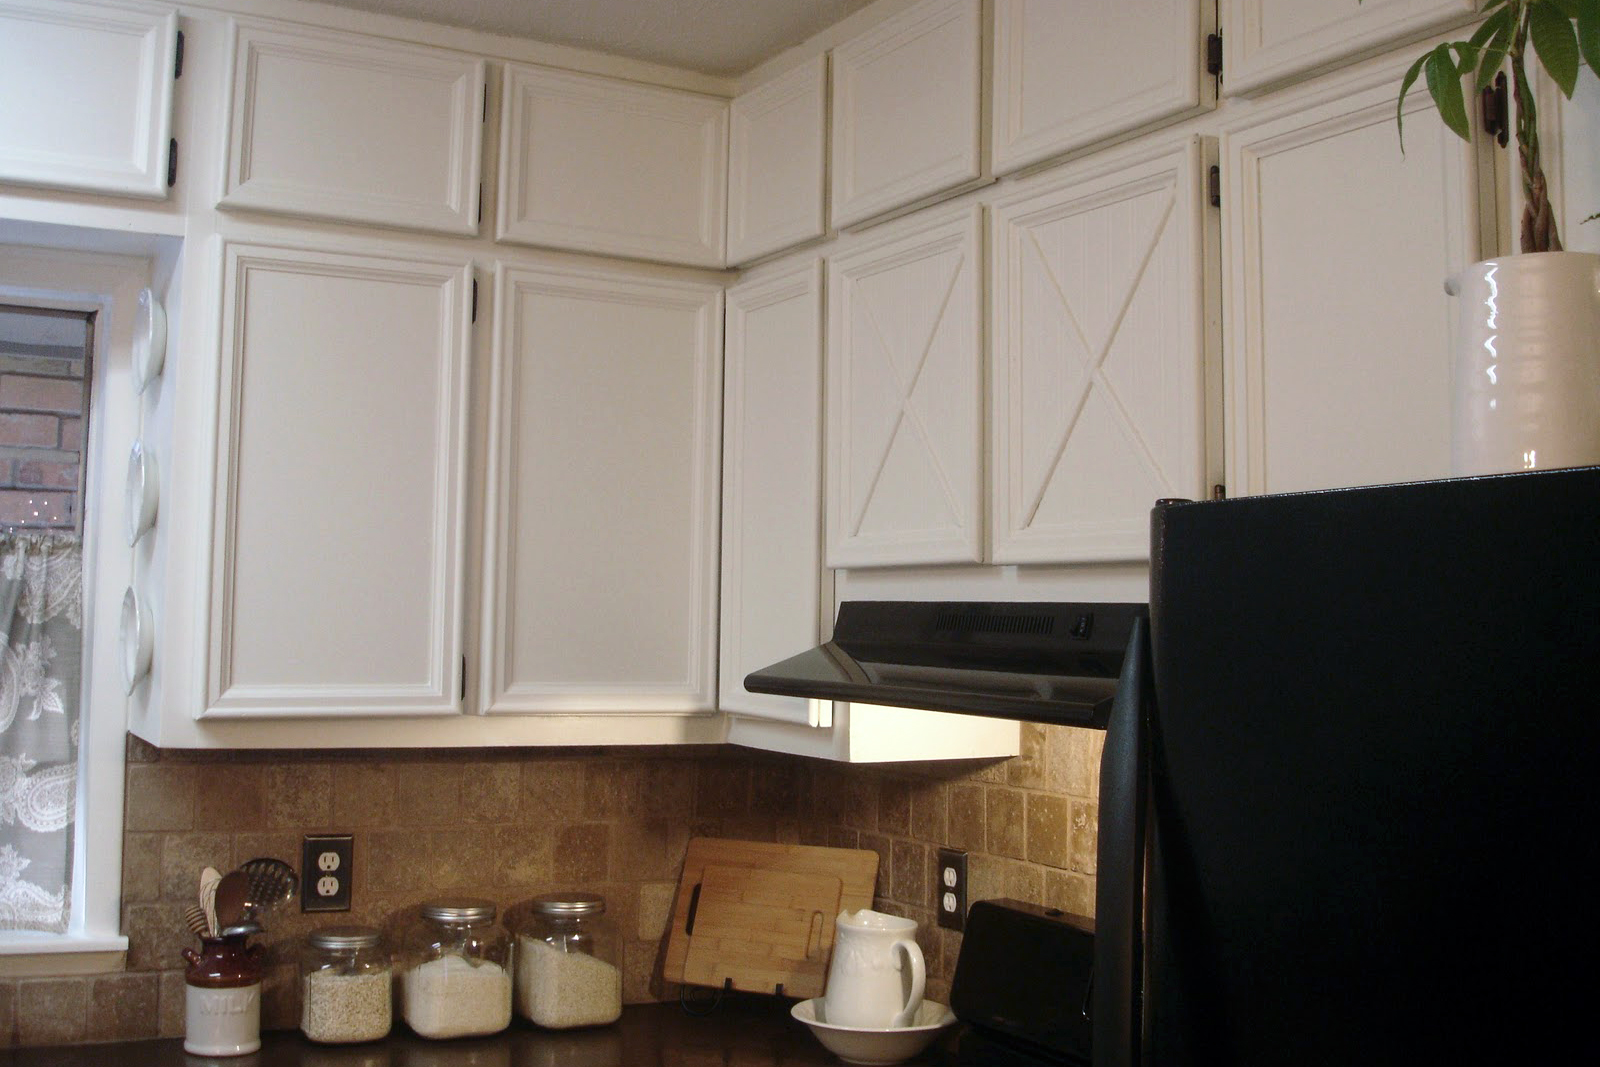 Stunning How To Update Old Kitchen Cabinets Pics Design Inspiration